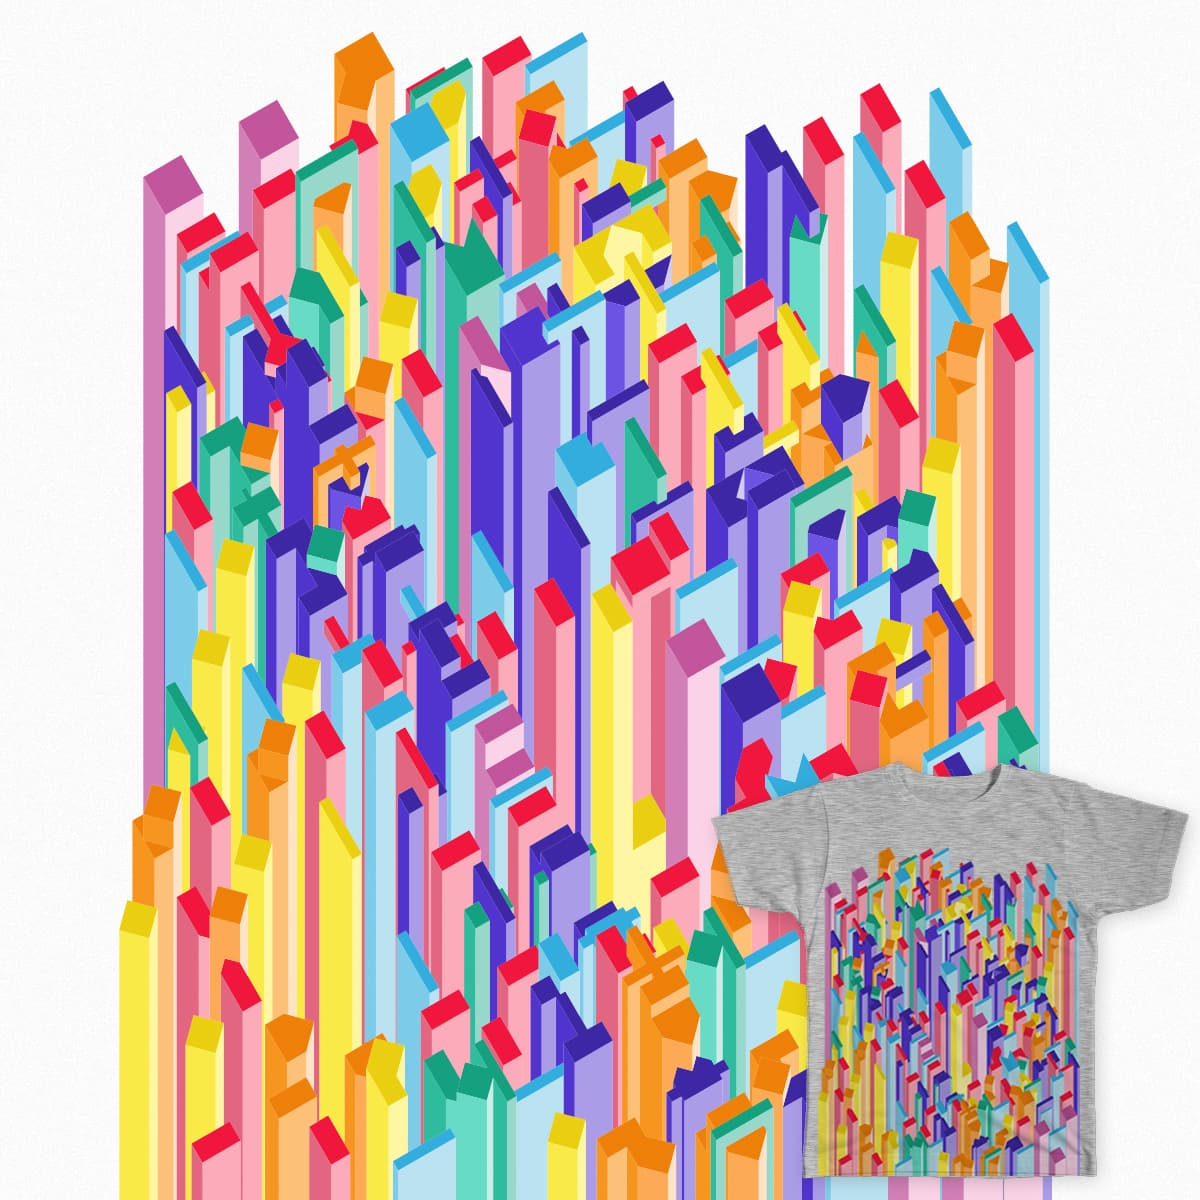 Spontaneously Planned City by JP_Torrealba on Threadless